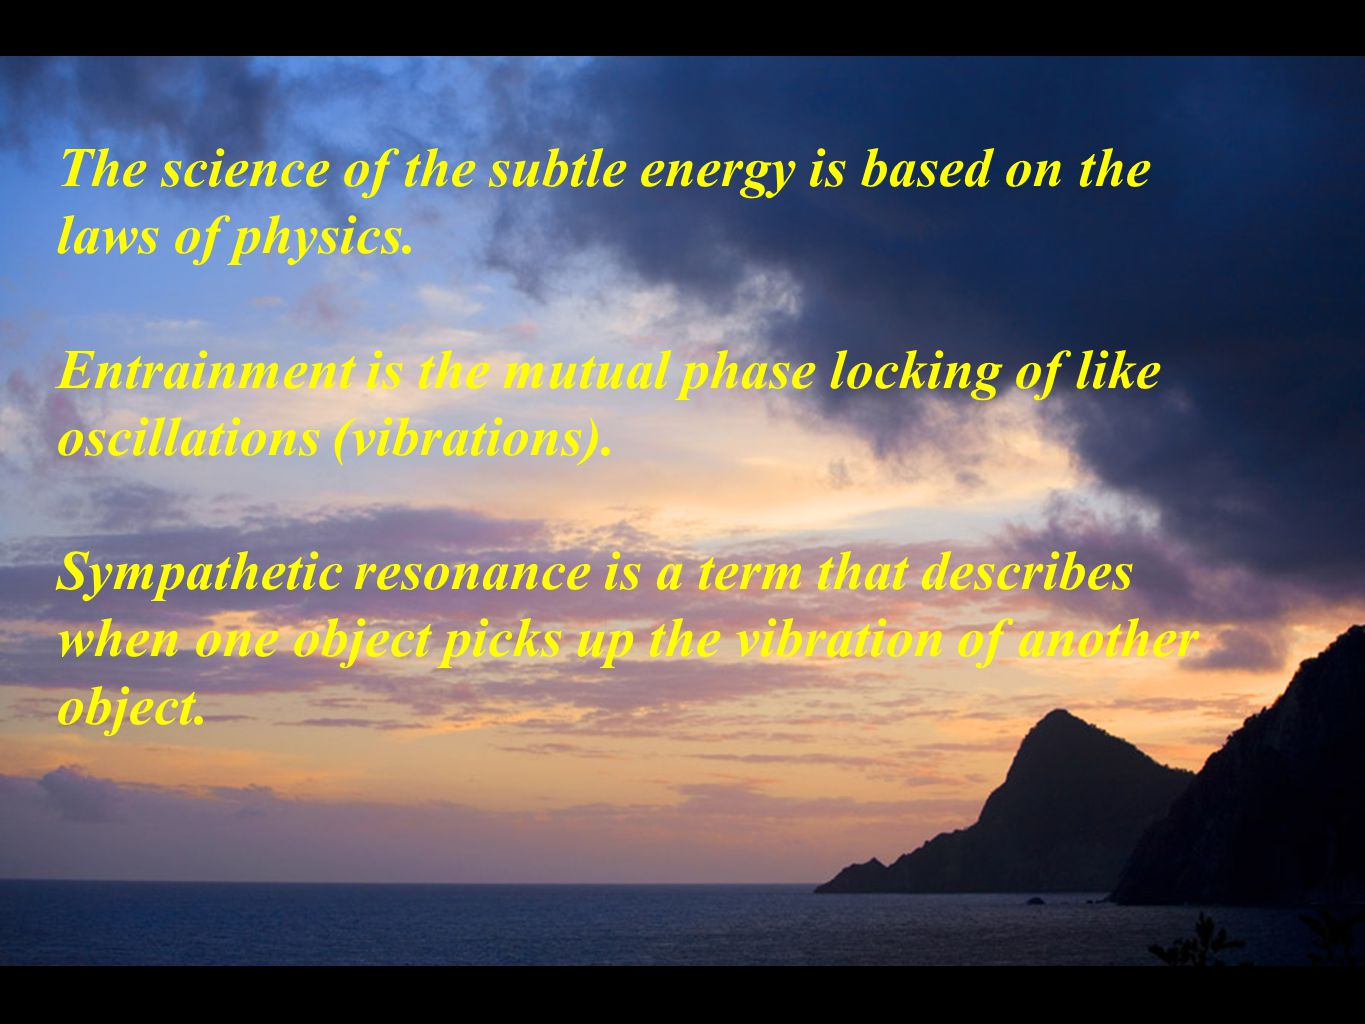 The science of the subtle energy is based on the laws of physics.